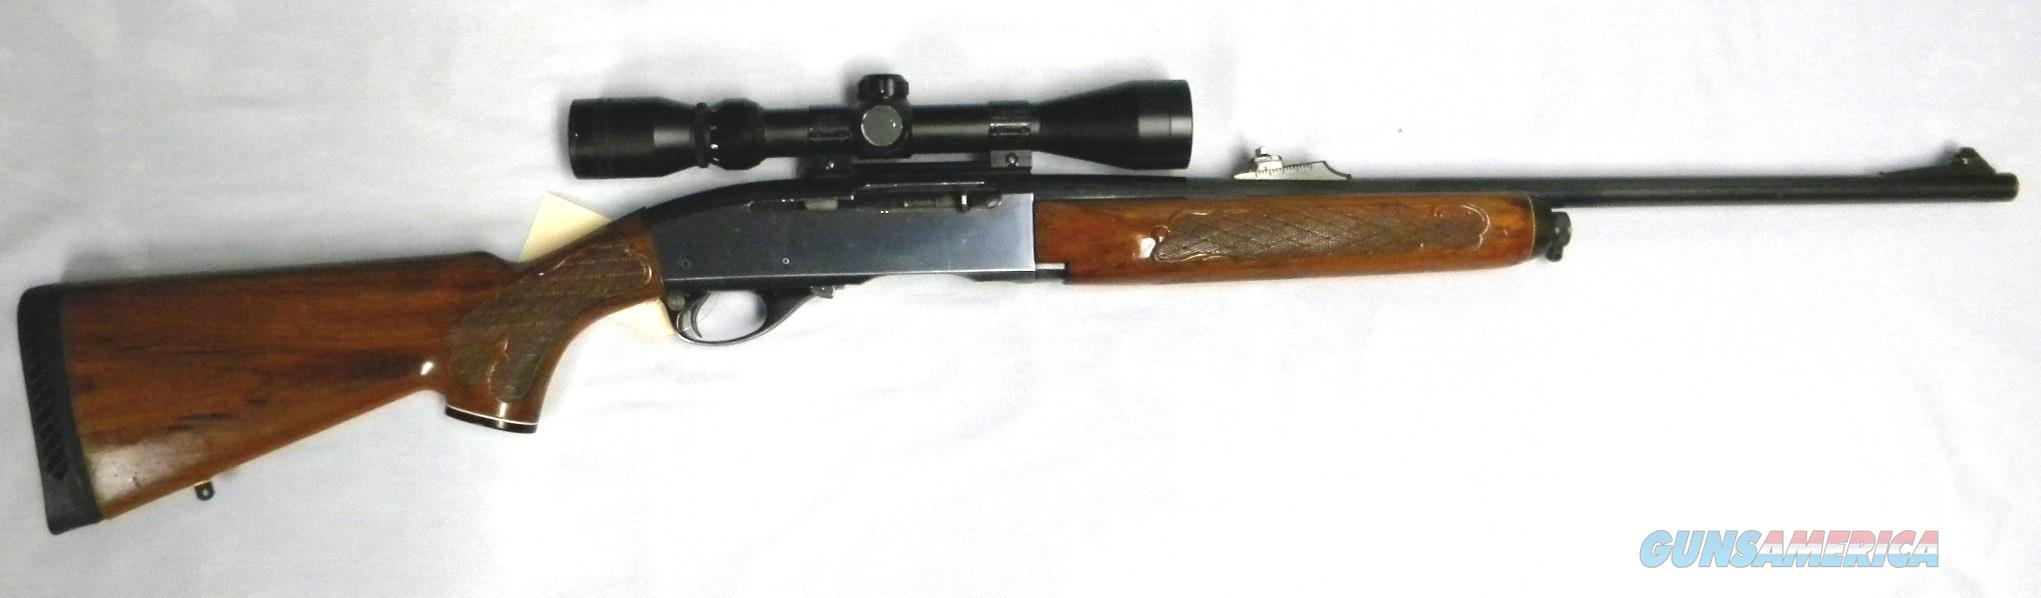 Remington 742(A) 'Woodsmaster' .30-06 Semi-Automatic Rifle  Guns > Rifles > Remington Rifles - Modern > Other